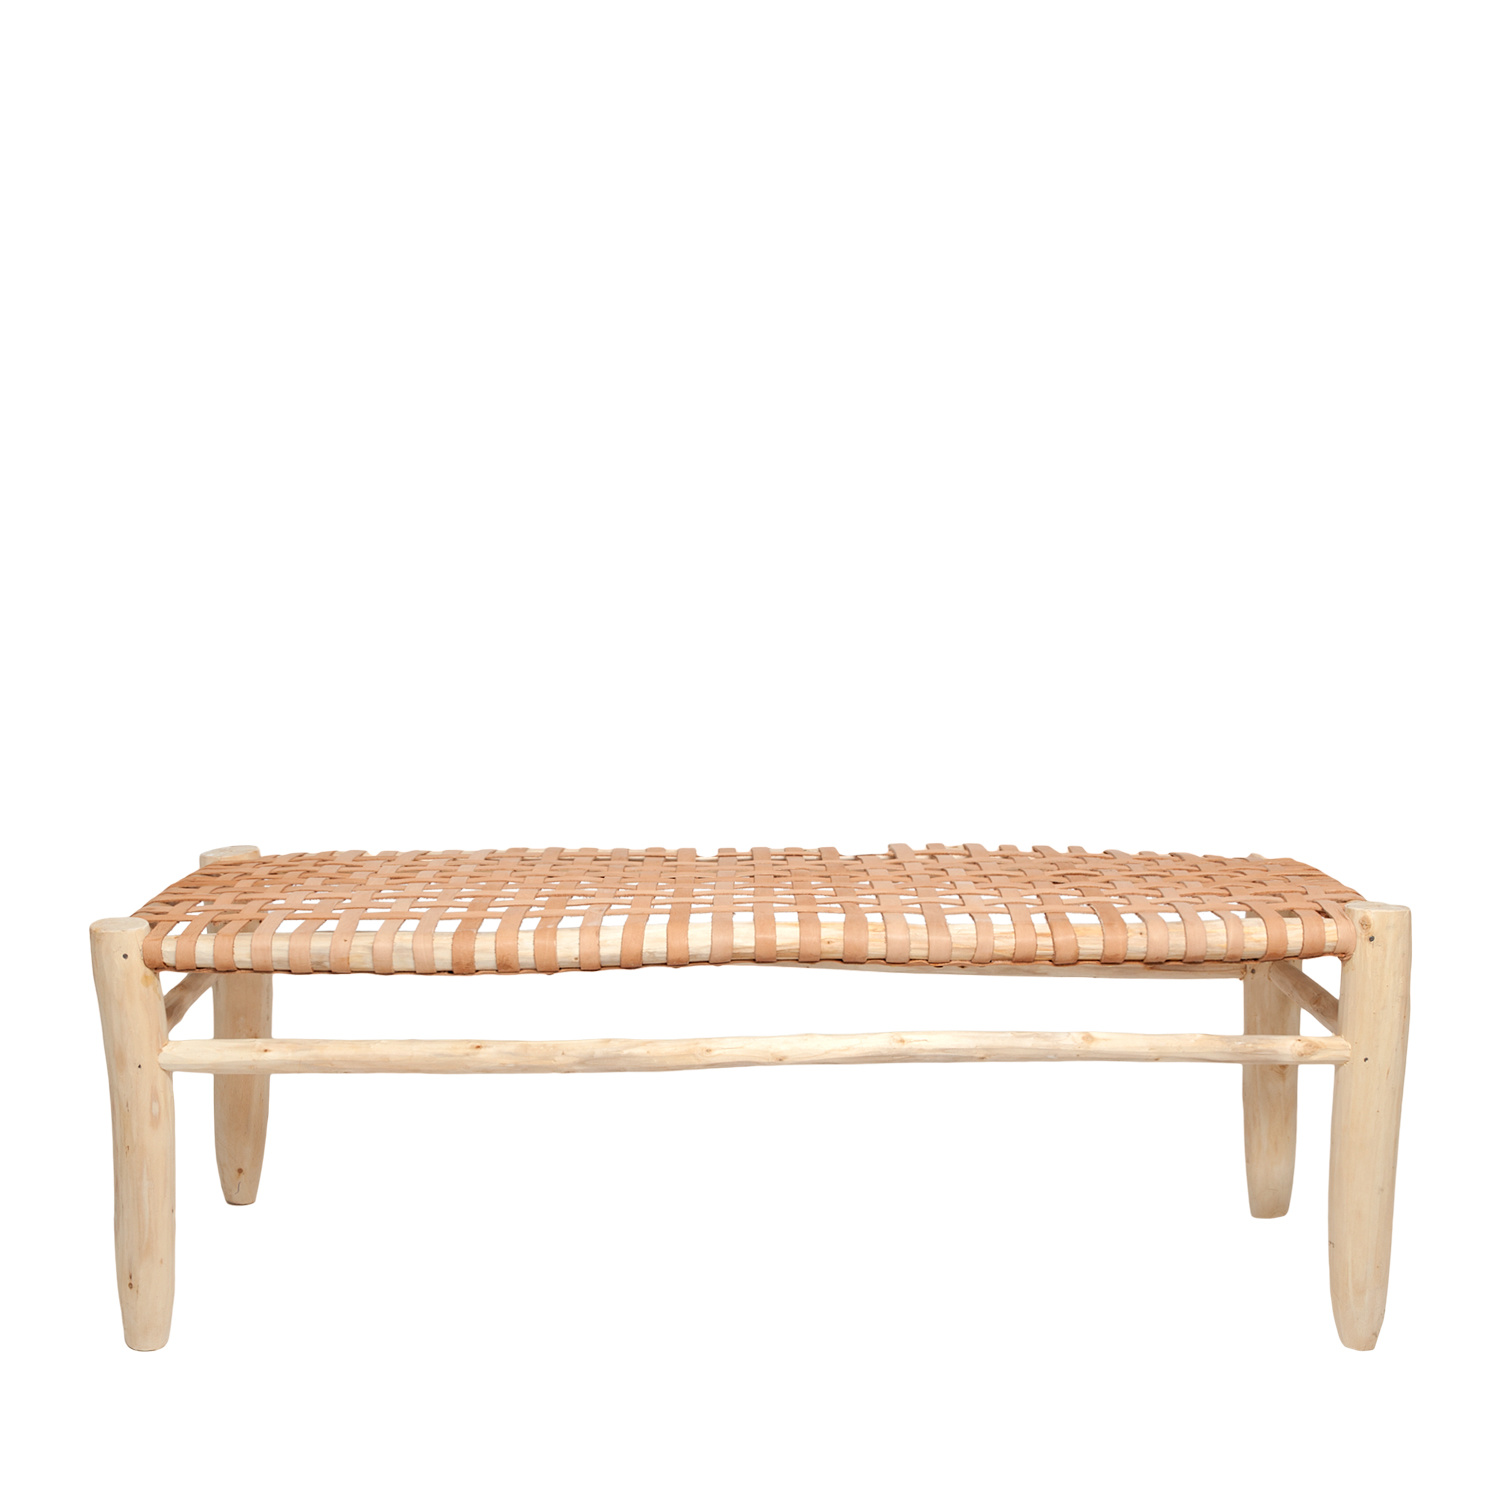 Household Hardware Moroccan bench w/ leather seating - 110x40cm - HouseHold Hardware